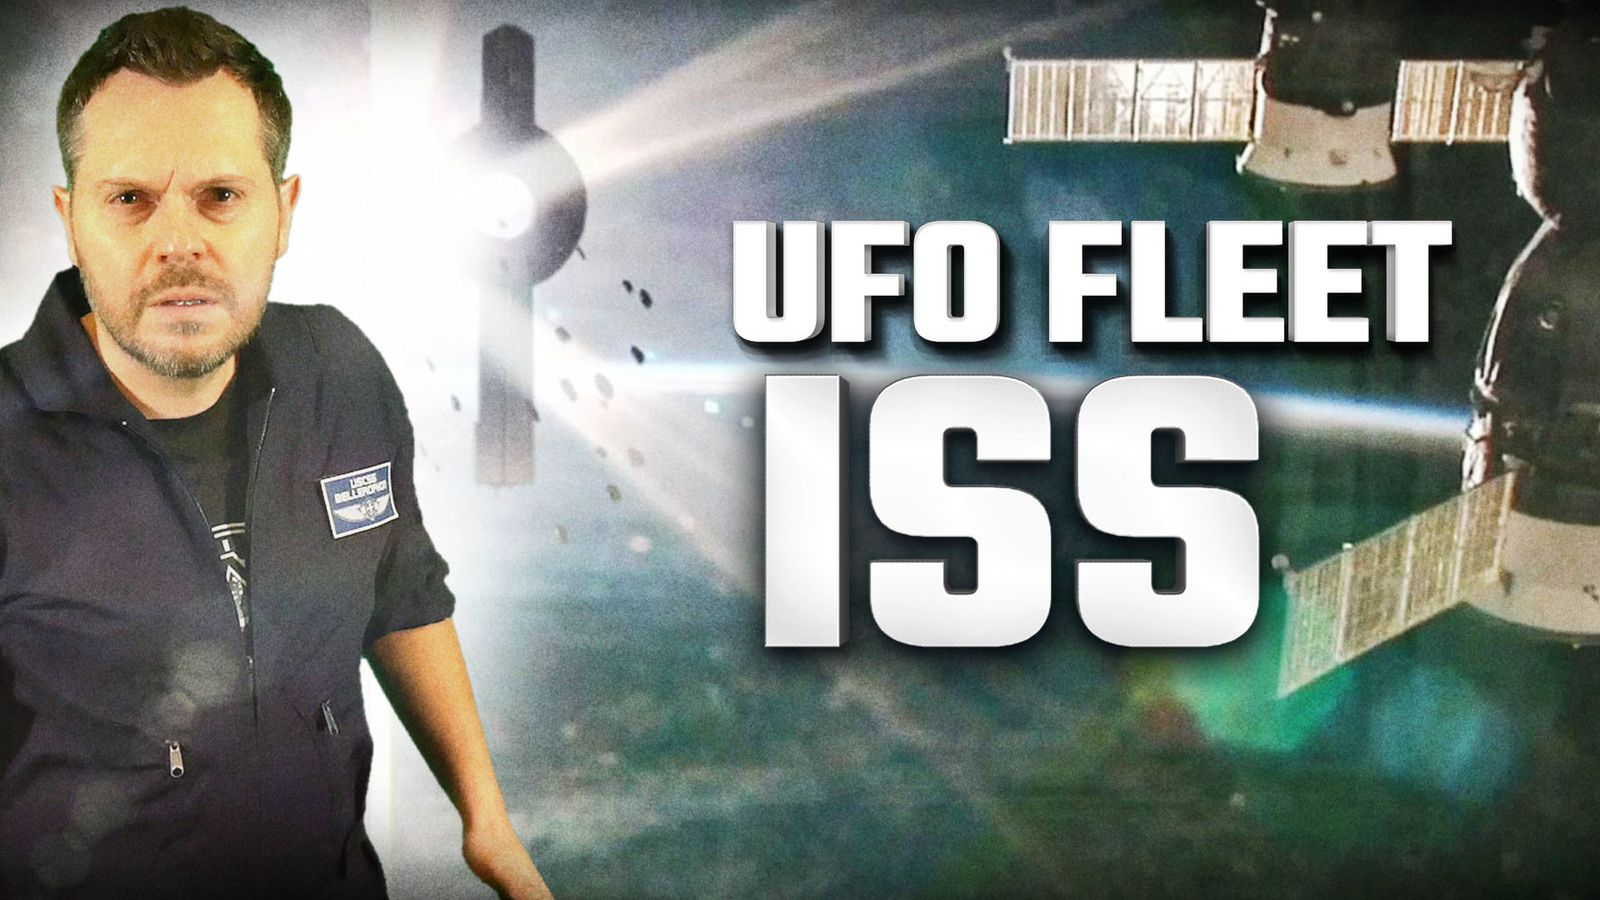 👽 Did Huge Fleet of UFOs Really Fly Over ISS ?